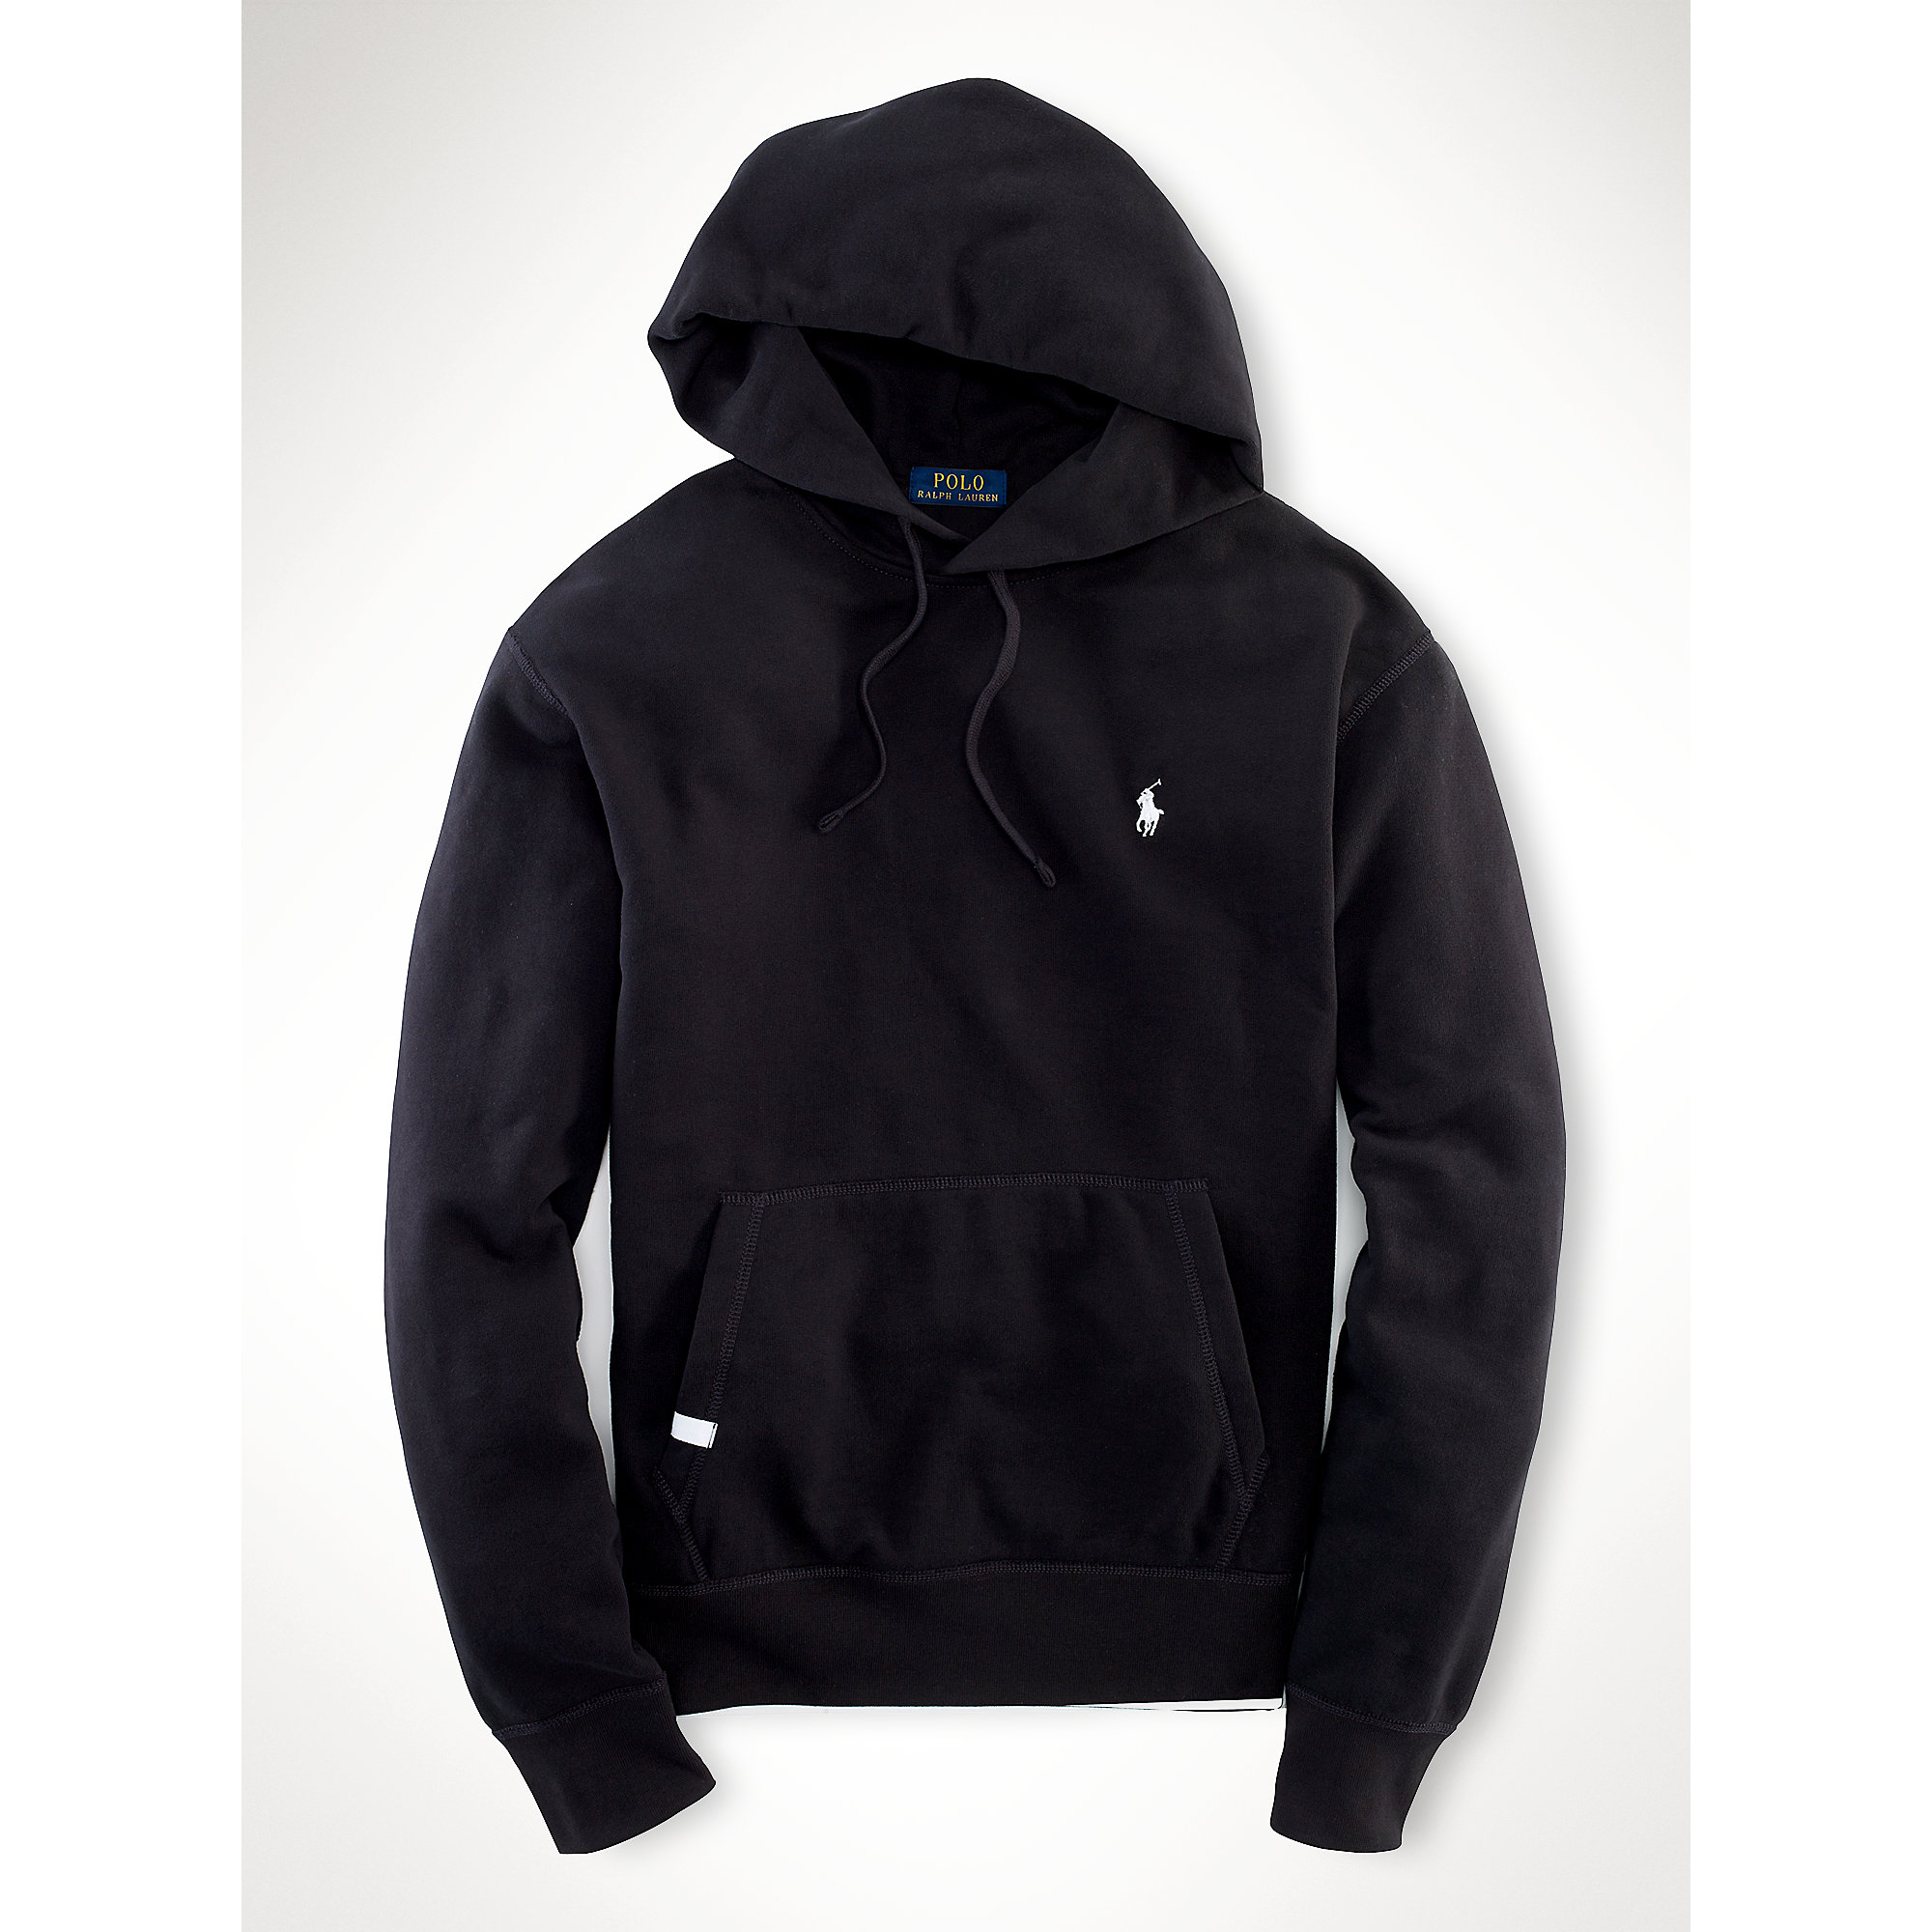 Ralph Black Men Polo Fleece Lauren For Performance Hoodie MqSGLVzUp